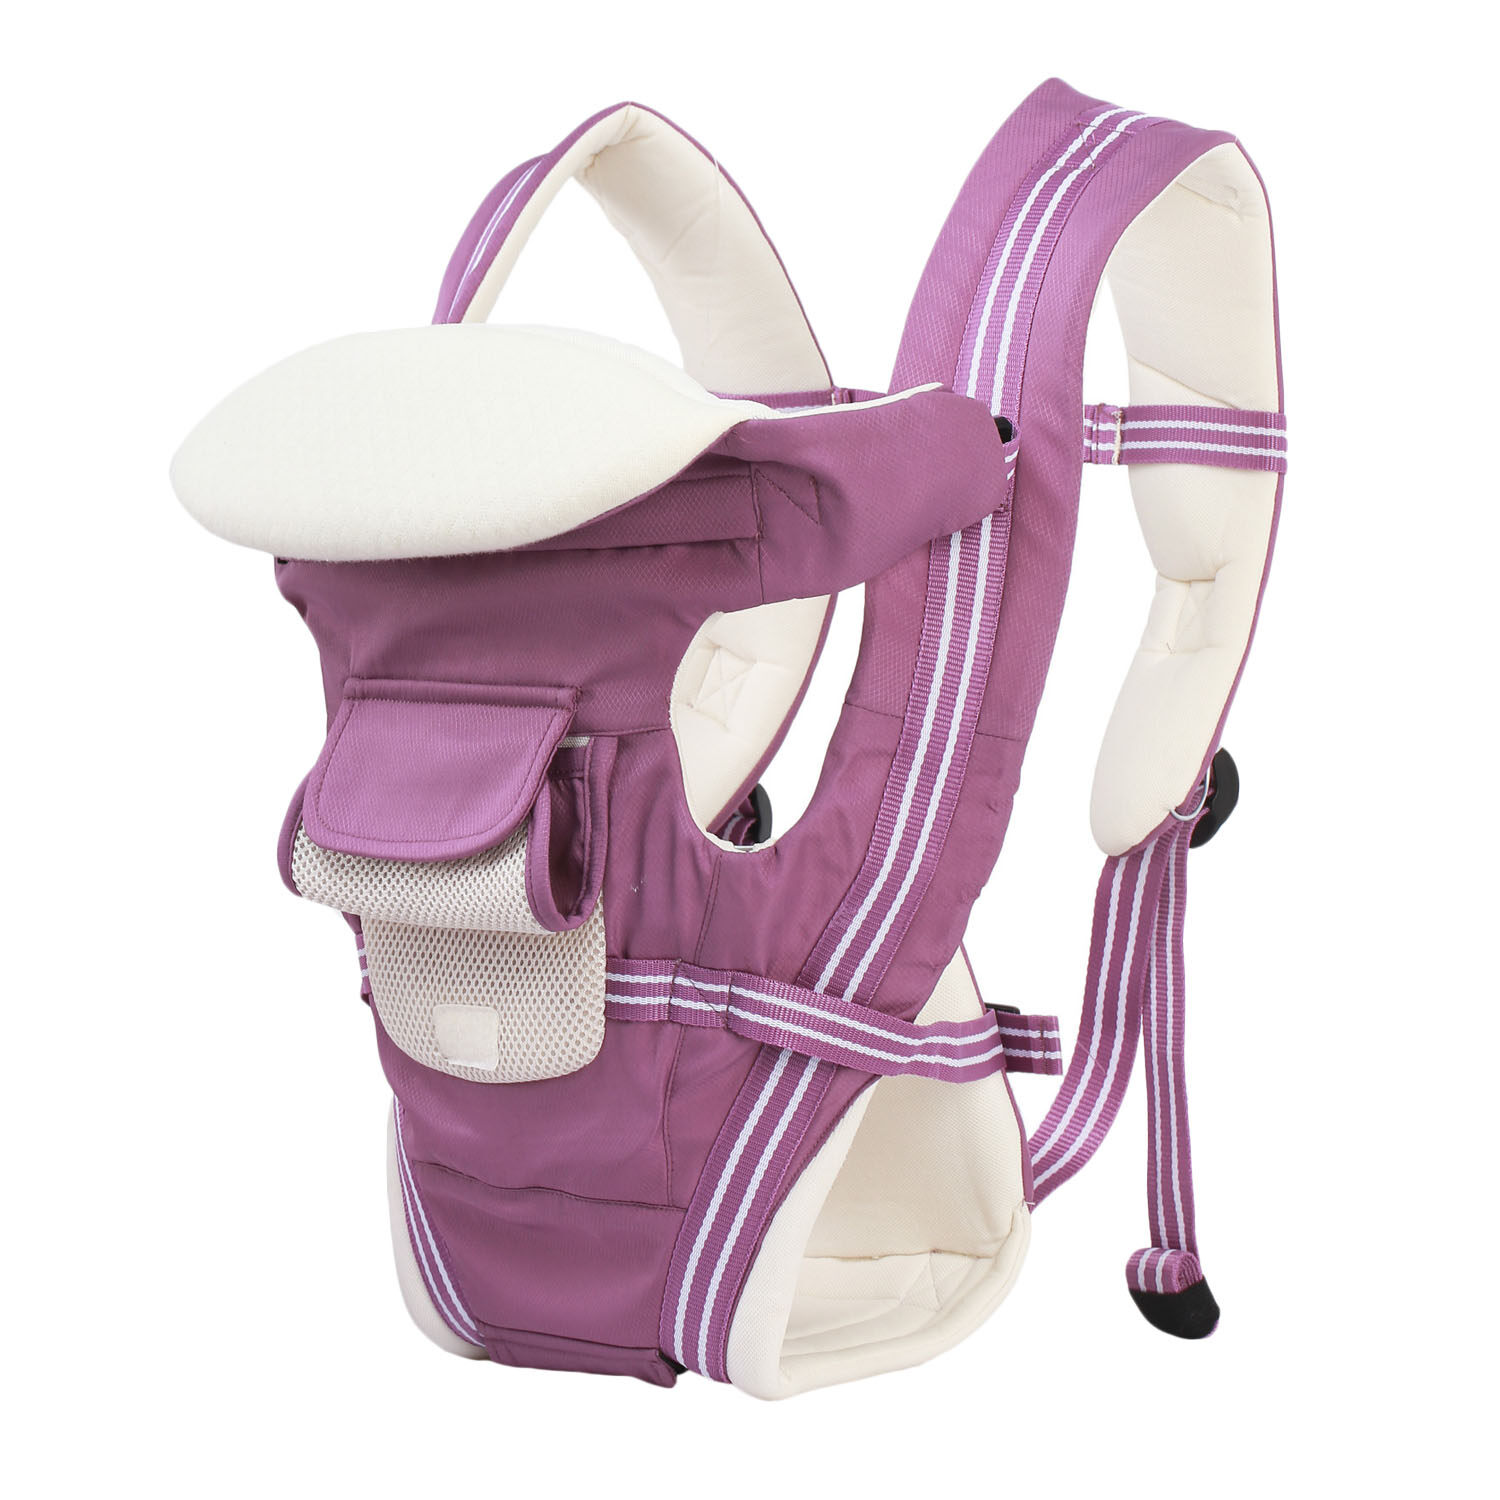 Multifunctional Adjustable Ergonomic Baby Kids Carrier With Hip Seat Waist Stool Sling Backpack Bag For Babies Toddlers Infants Intl Shopping